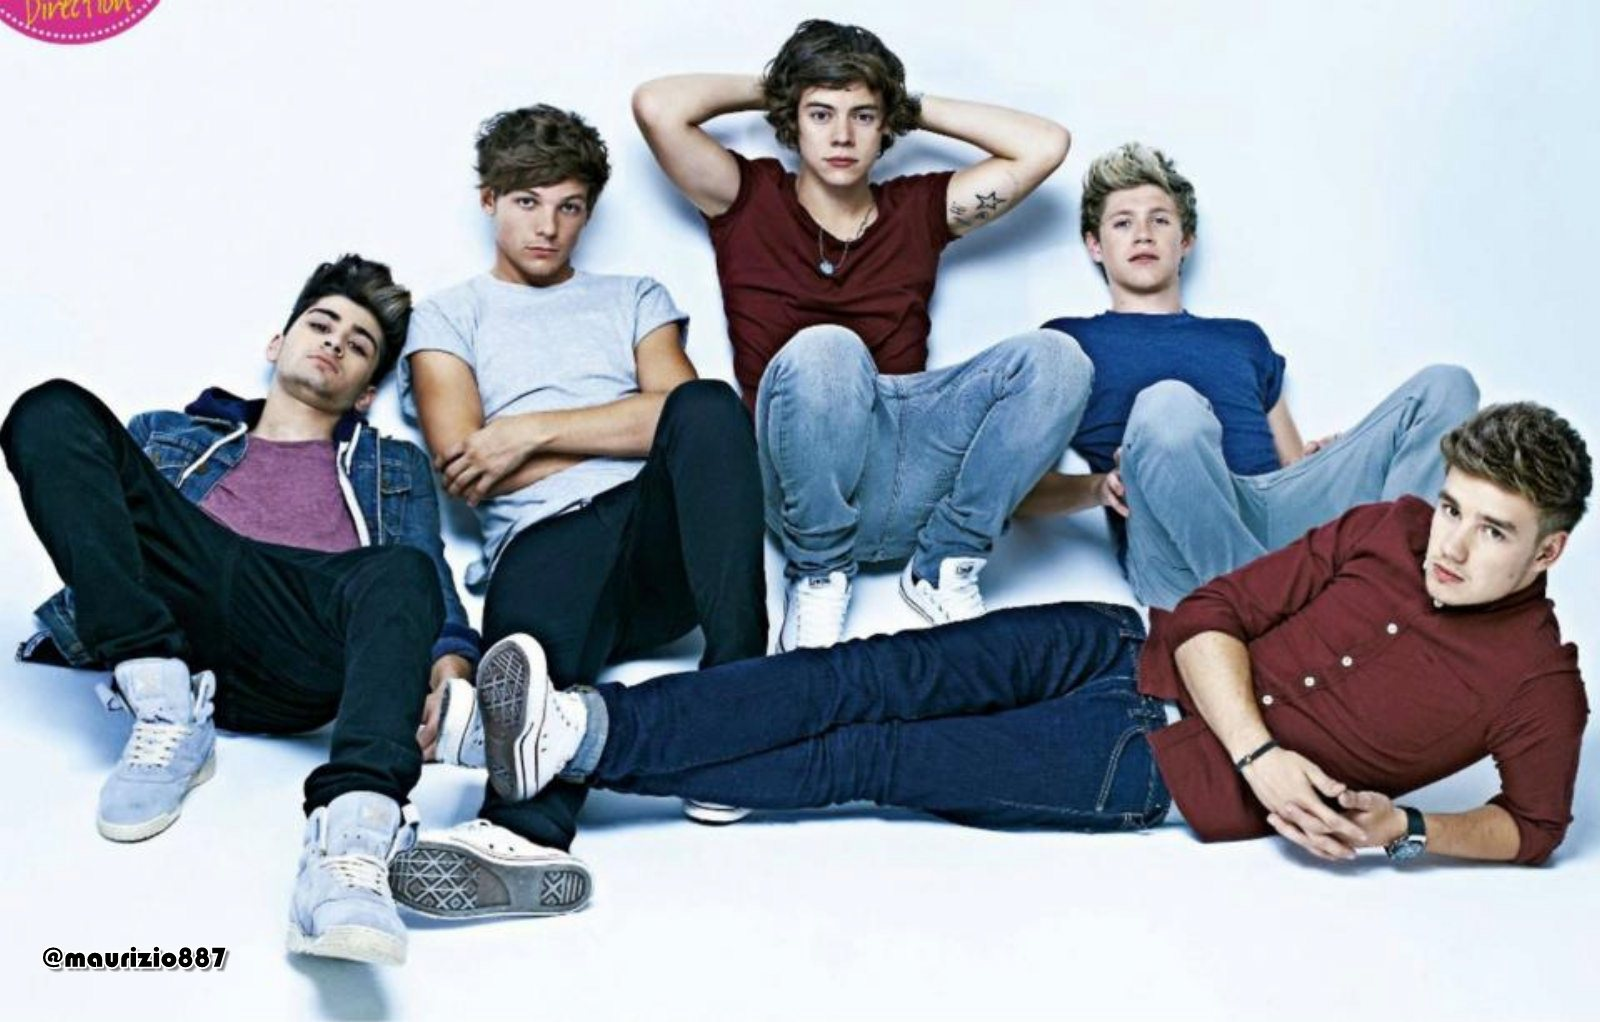 1D' photoshoots Teen Now Magazine, 2012